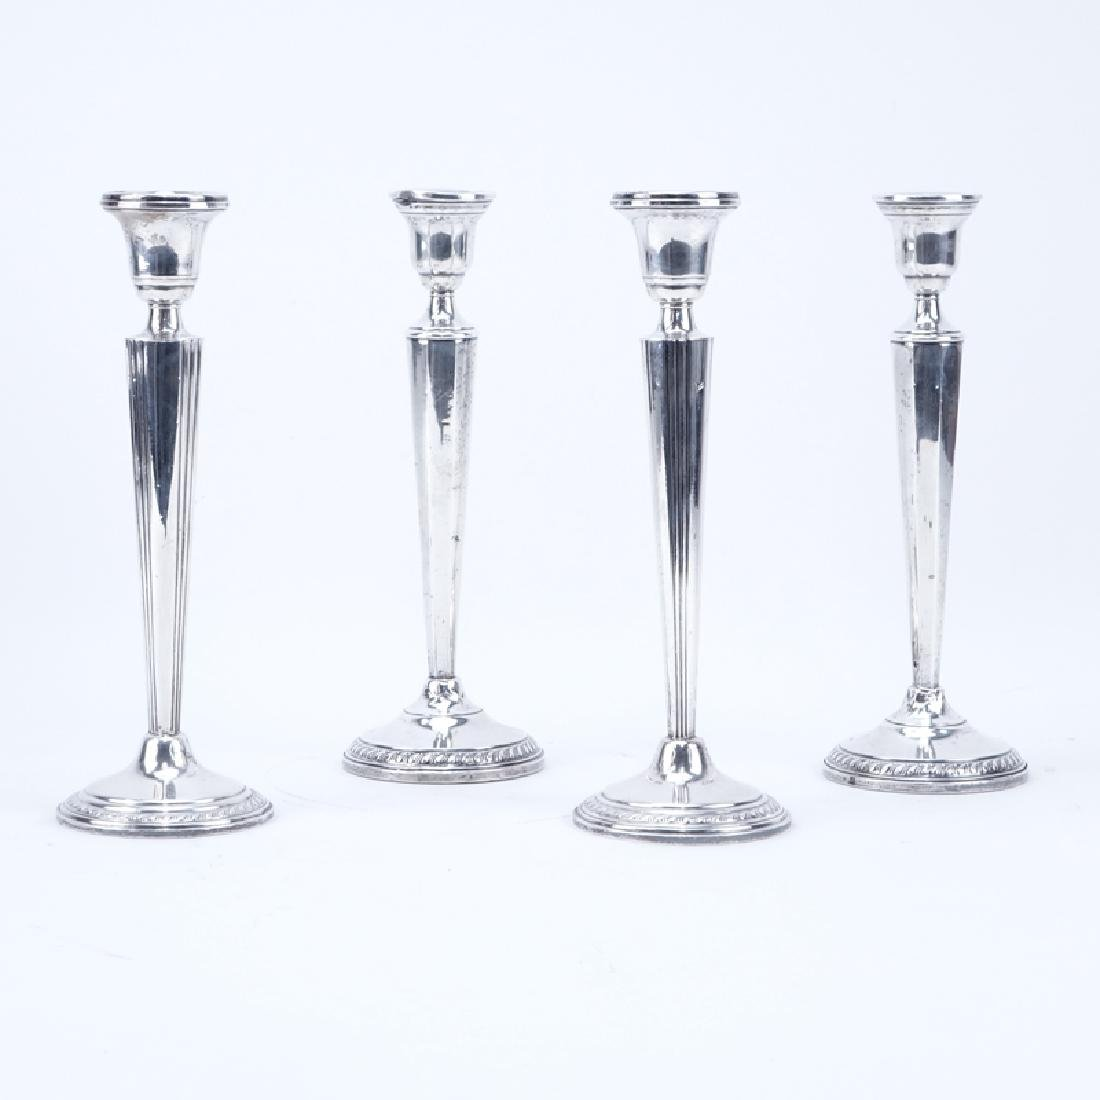 Two (2) Pair Weighted Sterling Silver Candlesticks.